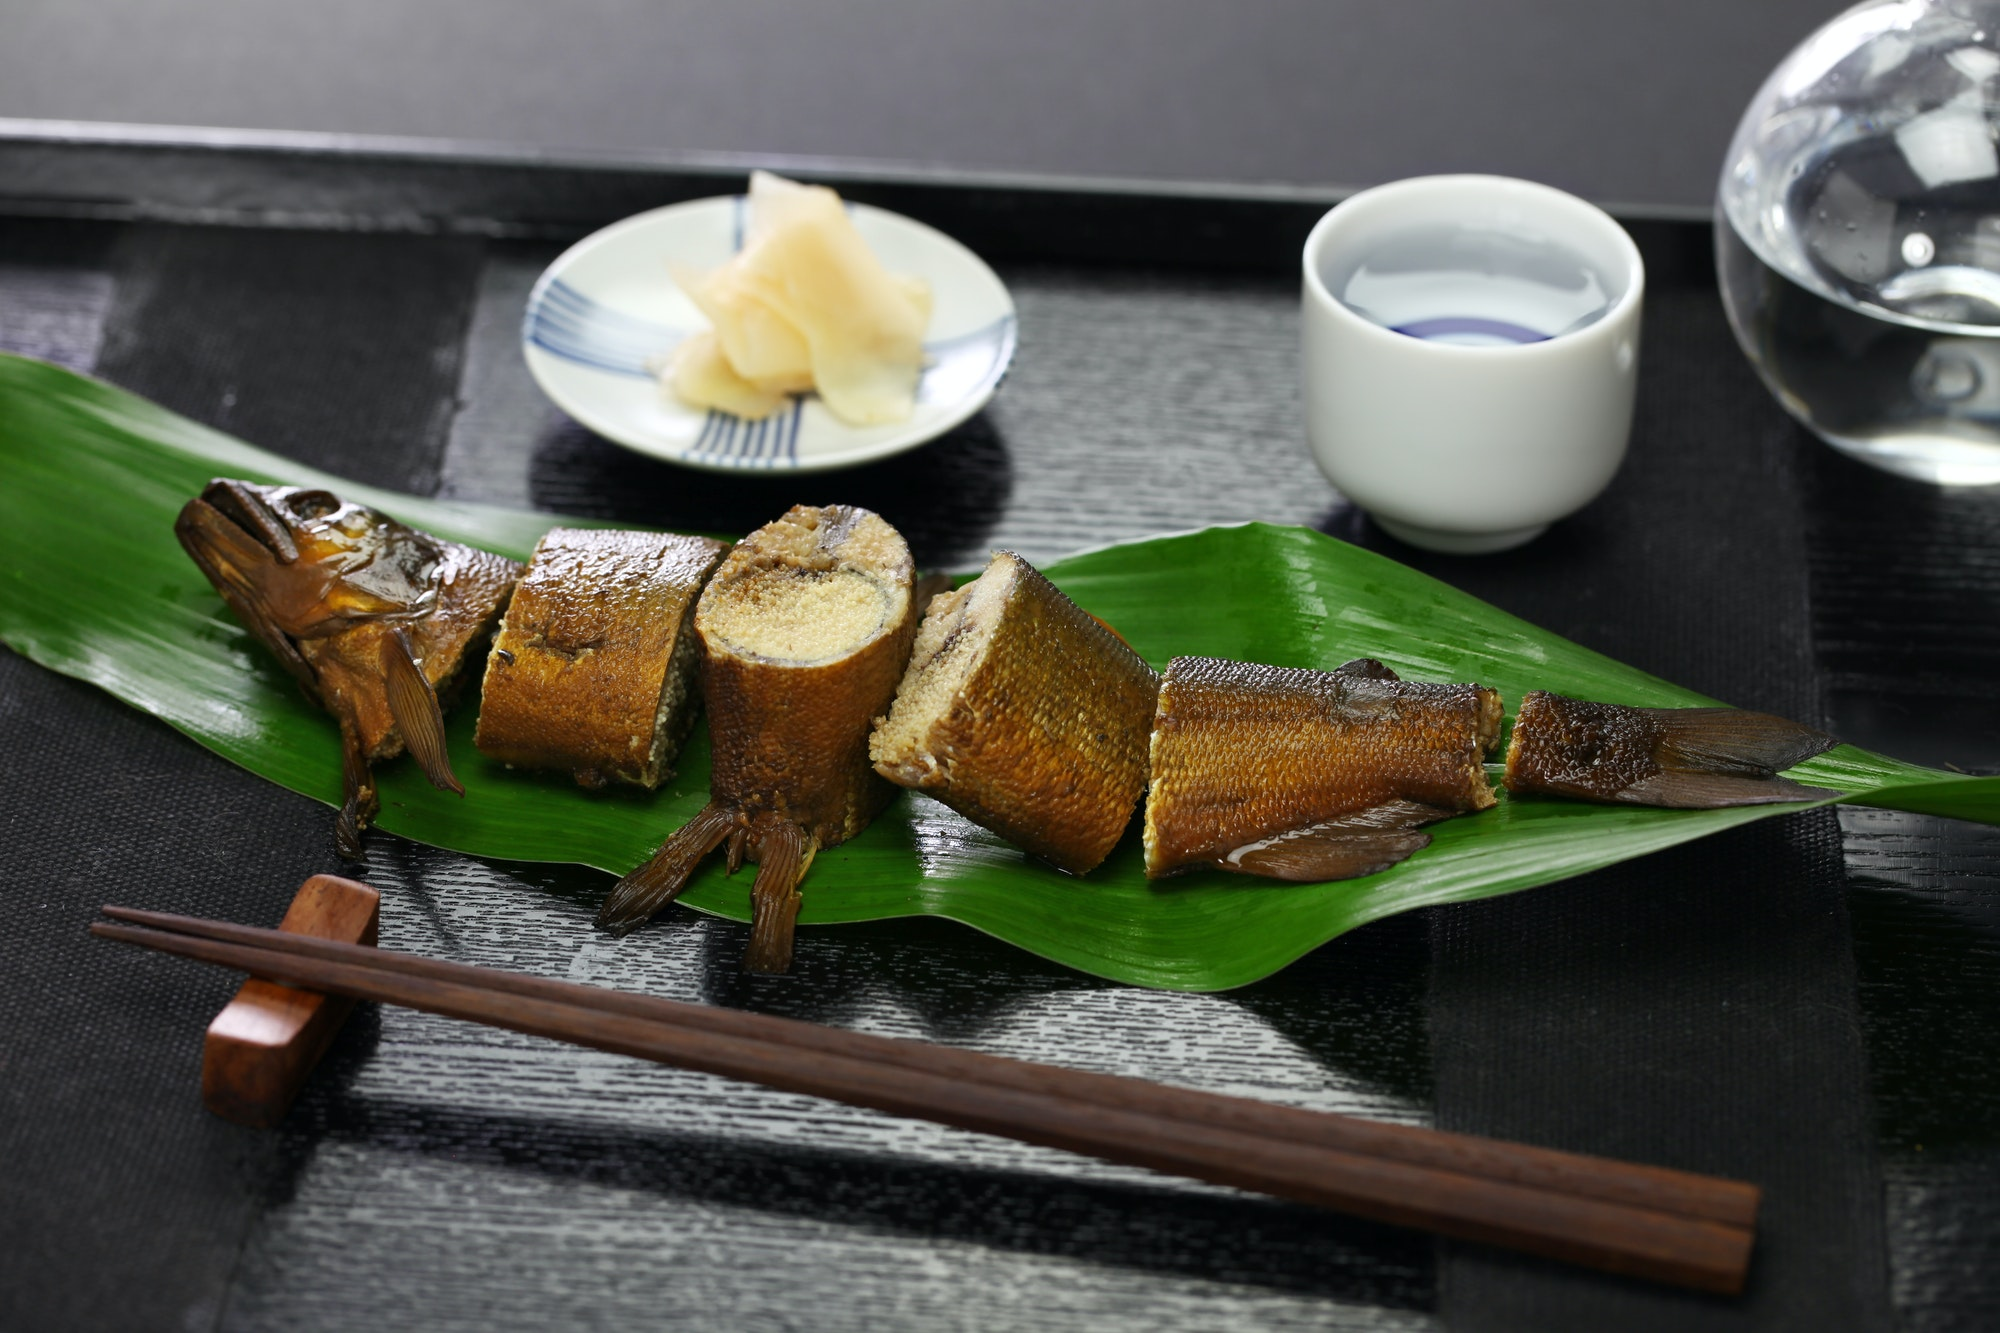 ayu-with-roe-simmered-in-soy-sauce-and-sugar-japanese-appetizer-for-sake.jpg